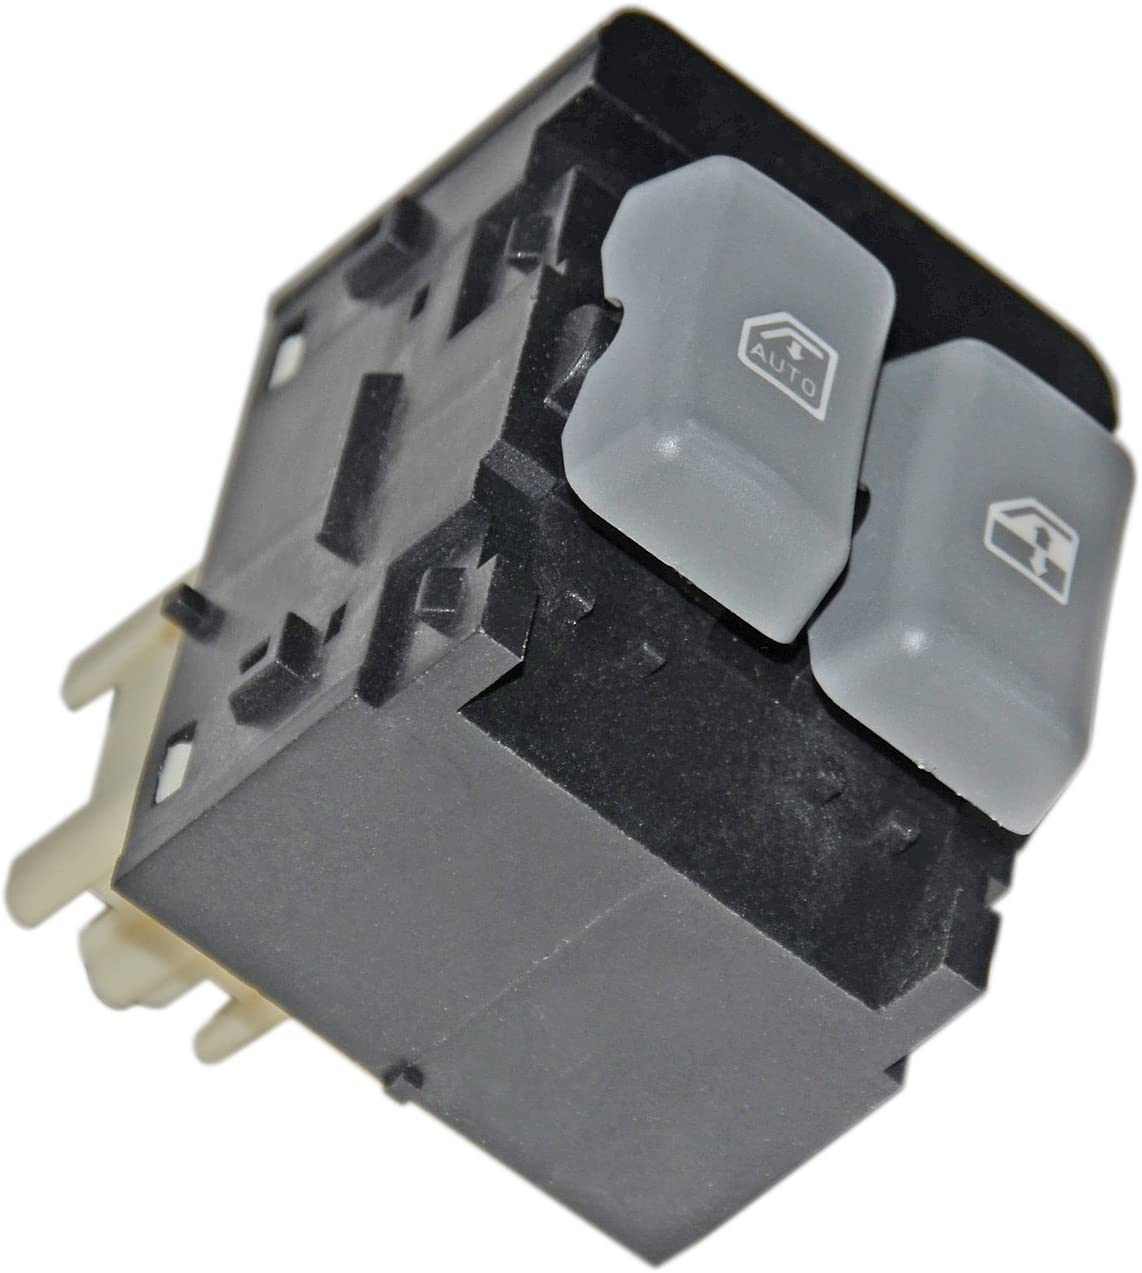 APDTY 012199 Power Window Switch Fits Front Left Driver-Side 2001-2002 Chevrolet Express or Savana 1500 2500 3500 Van Replaces 19244662, 15047832